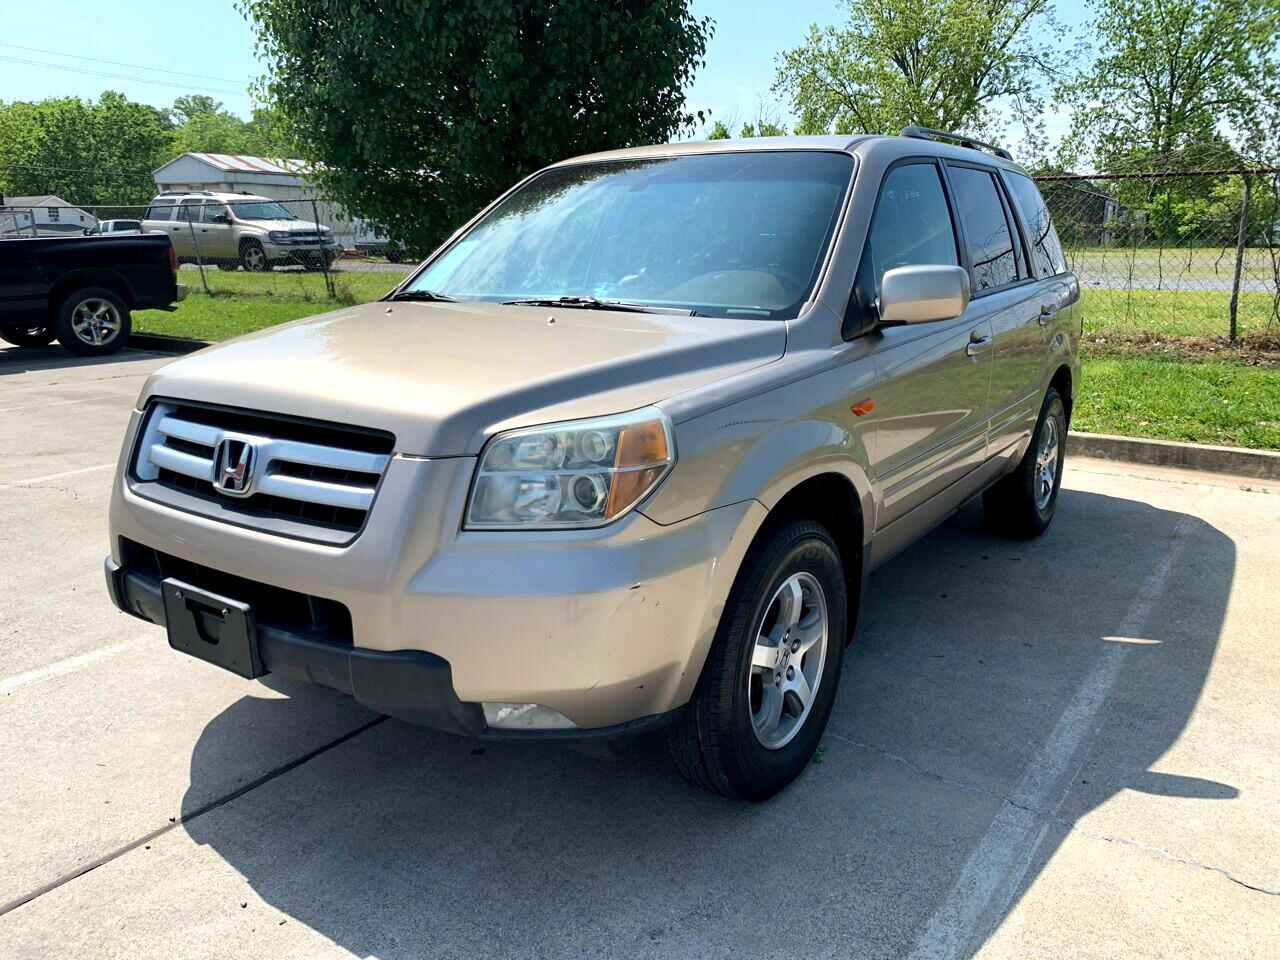 Honda Pilot EX w/ Leather and DVD 2006